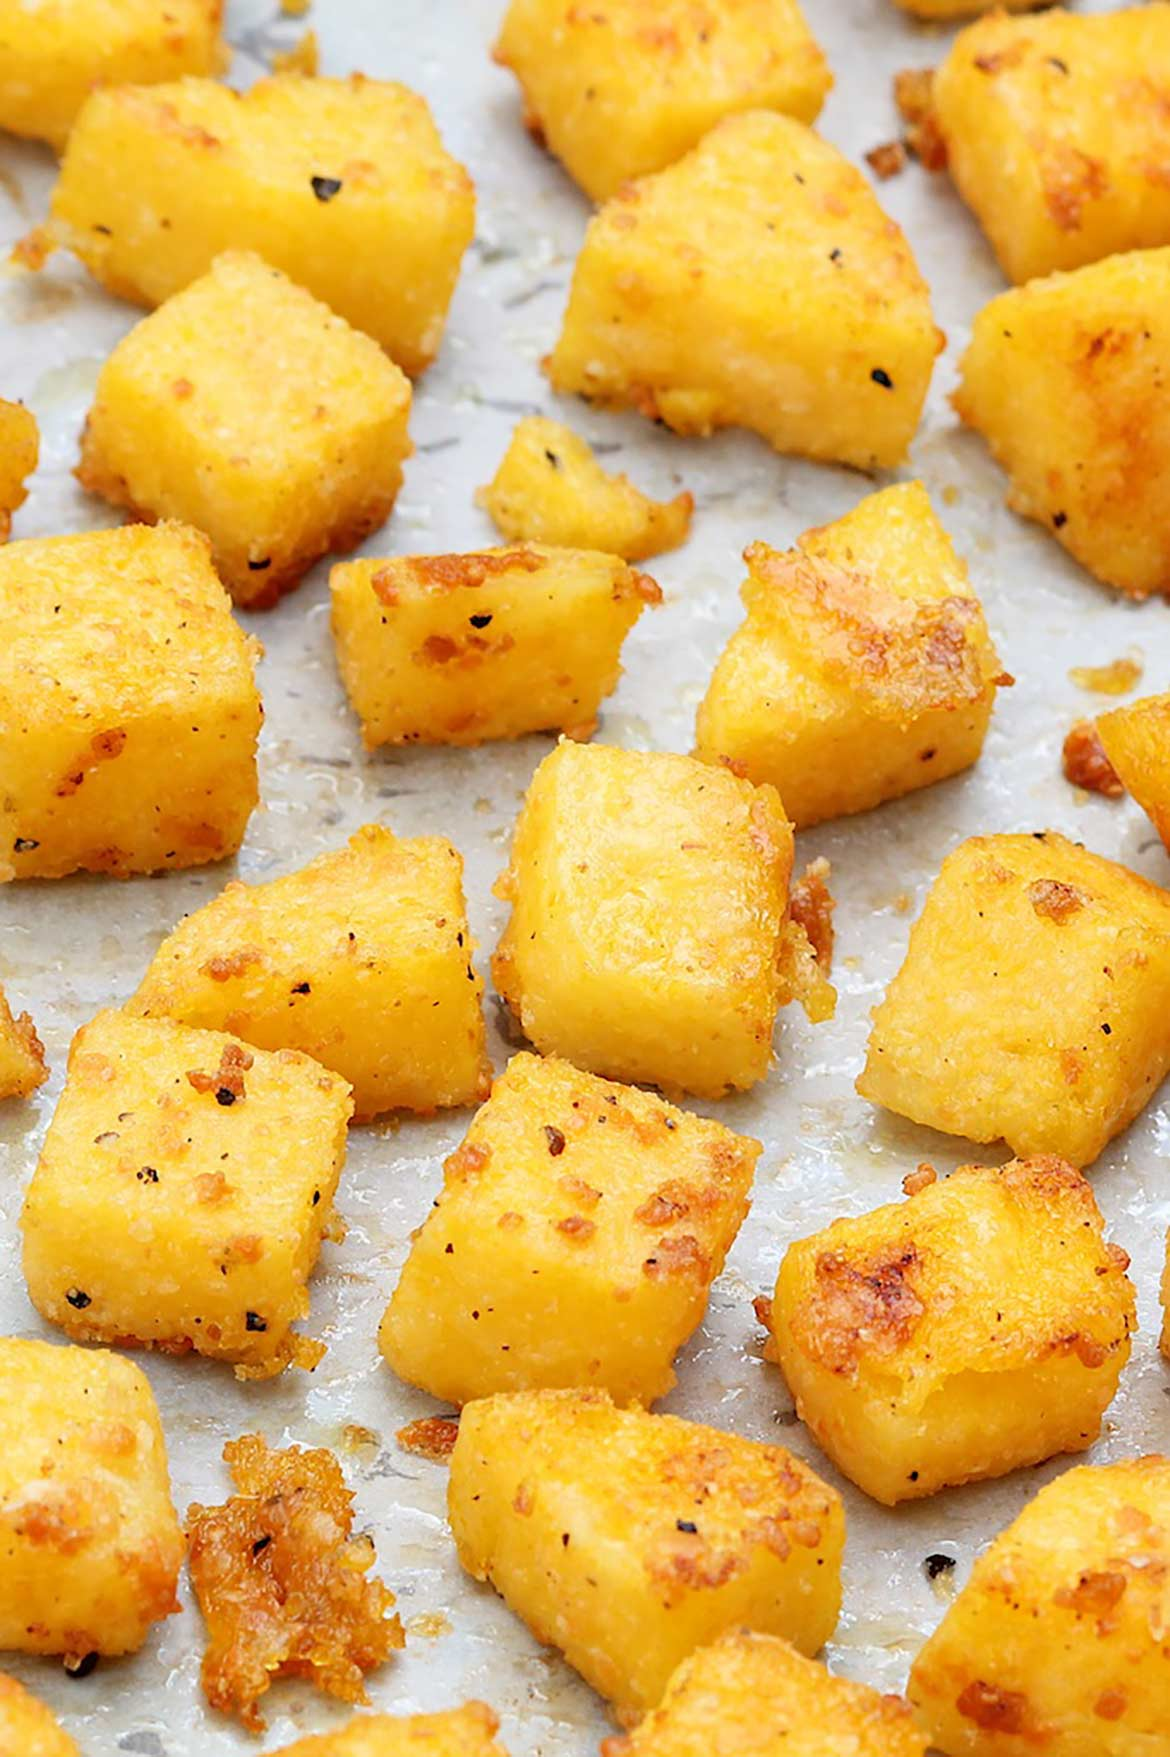 Tender on the inside and crispy on the outside, these golden bites are simple to make and add staying power to salads-although sneaky fingers are likely to devour them hot off the baking sheet!